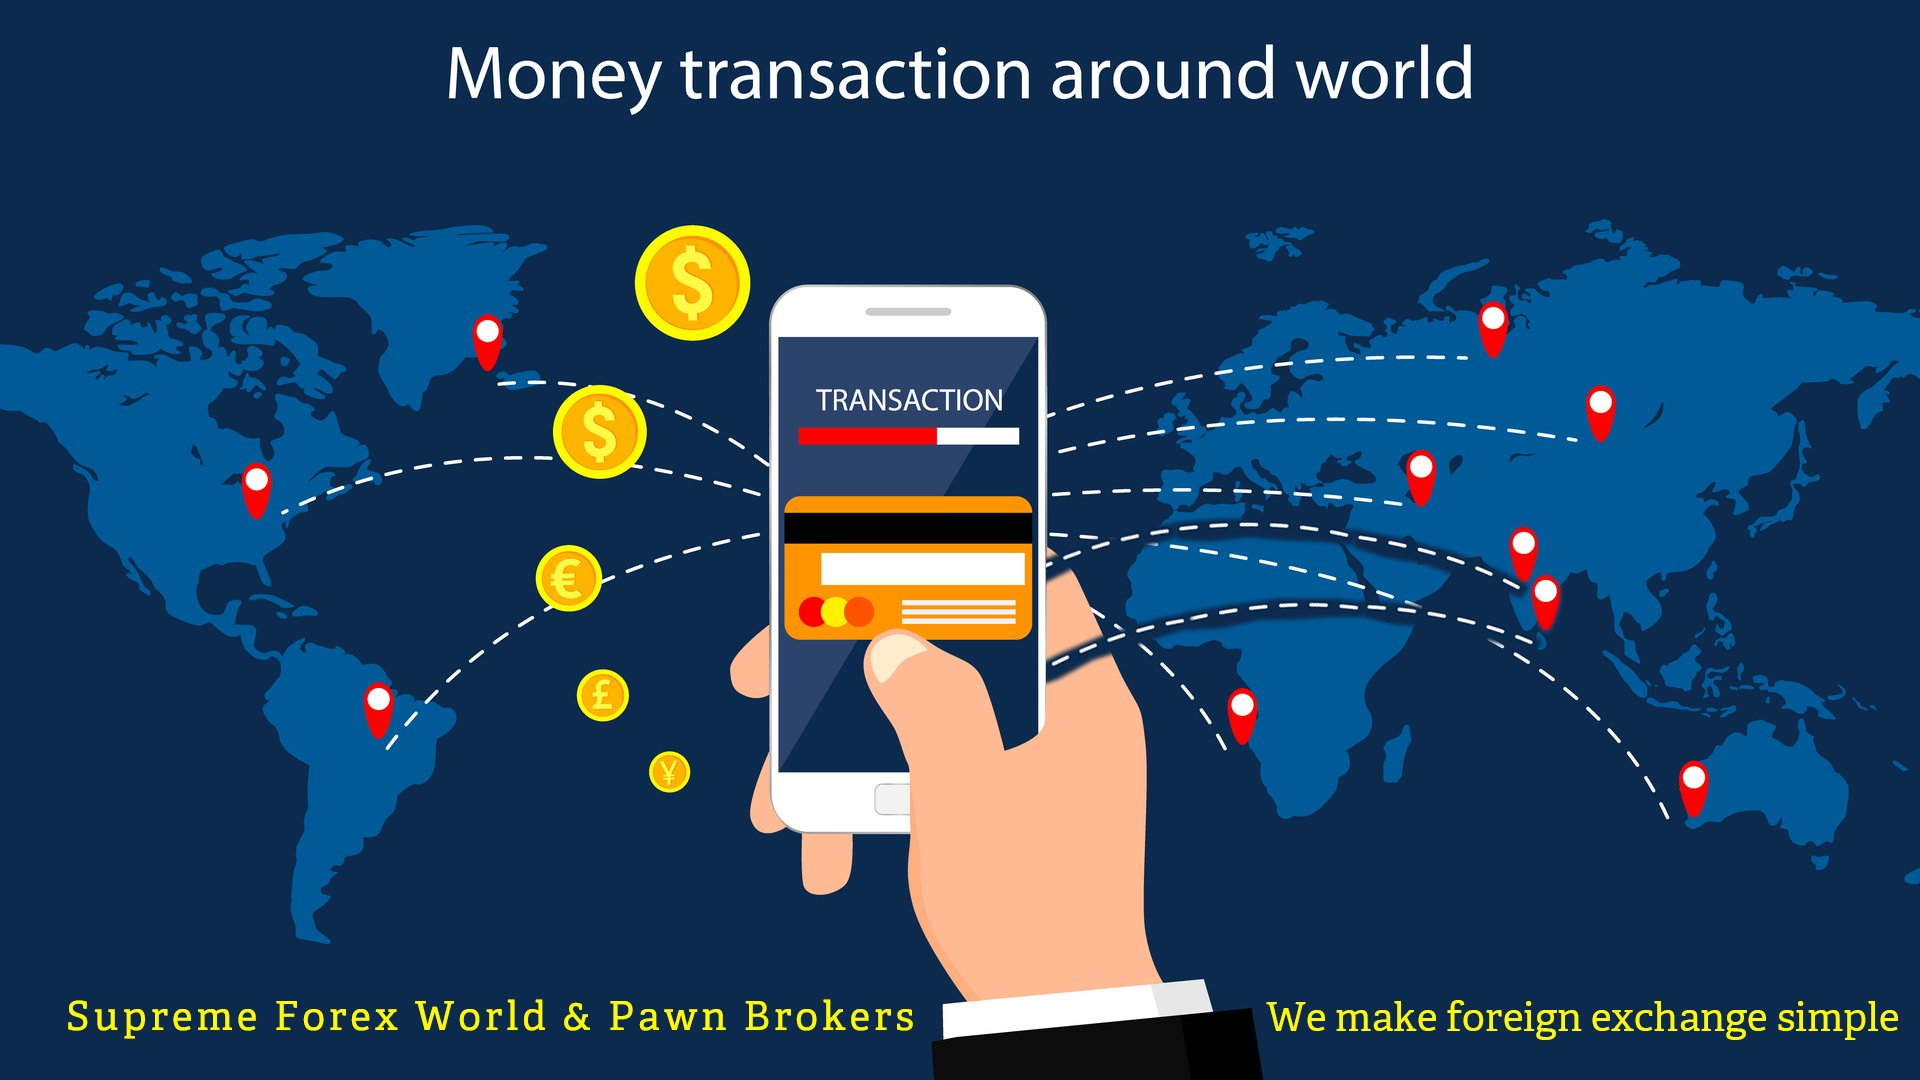 Supreme Forex World & Pawn Brokers